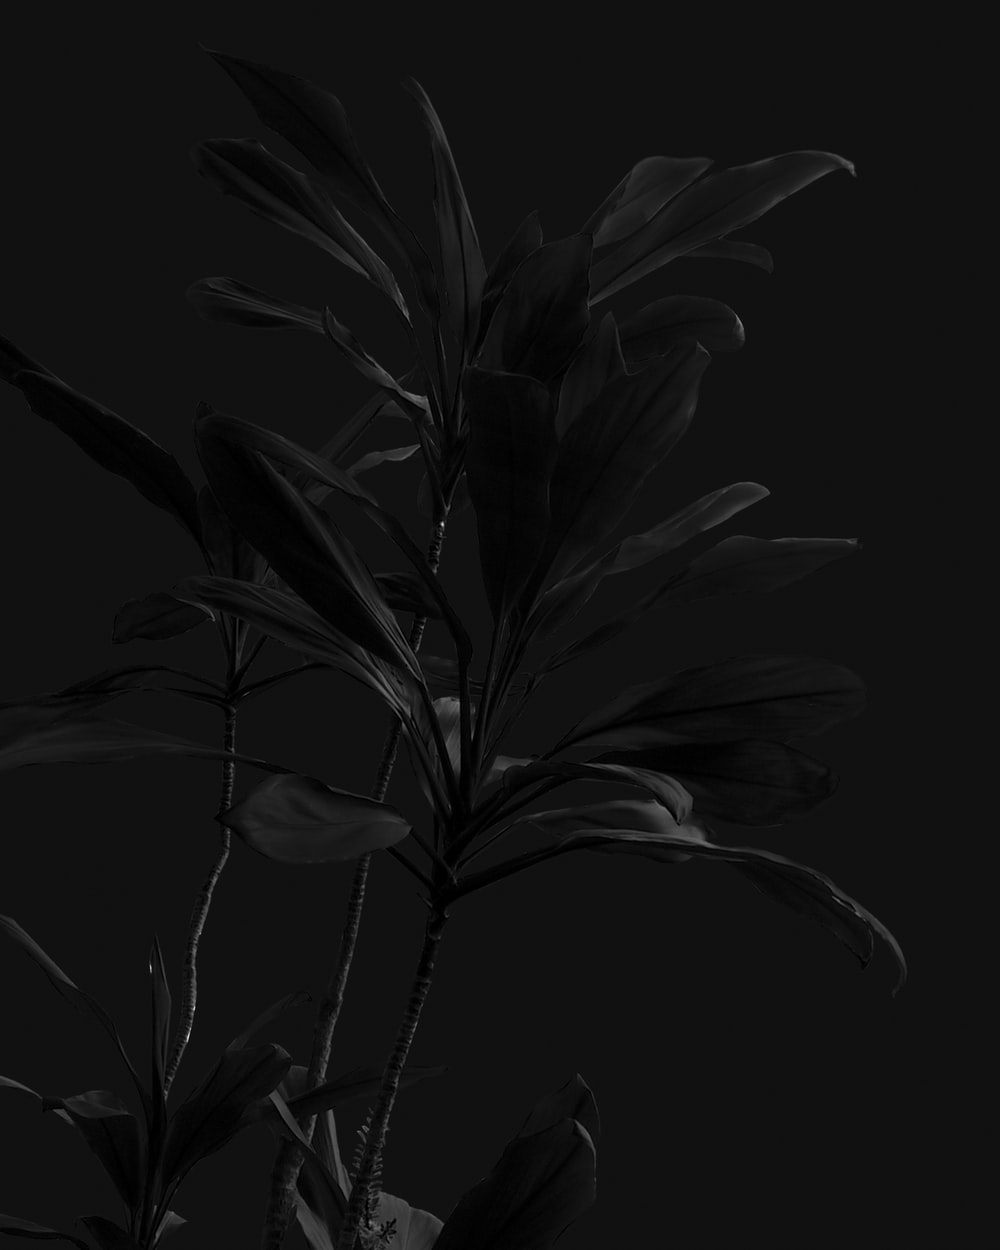 grayscale photo of flower in bloom